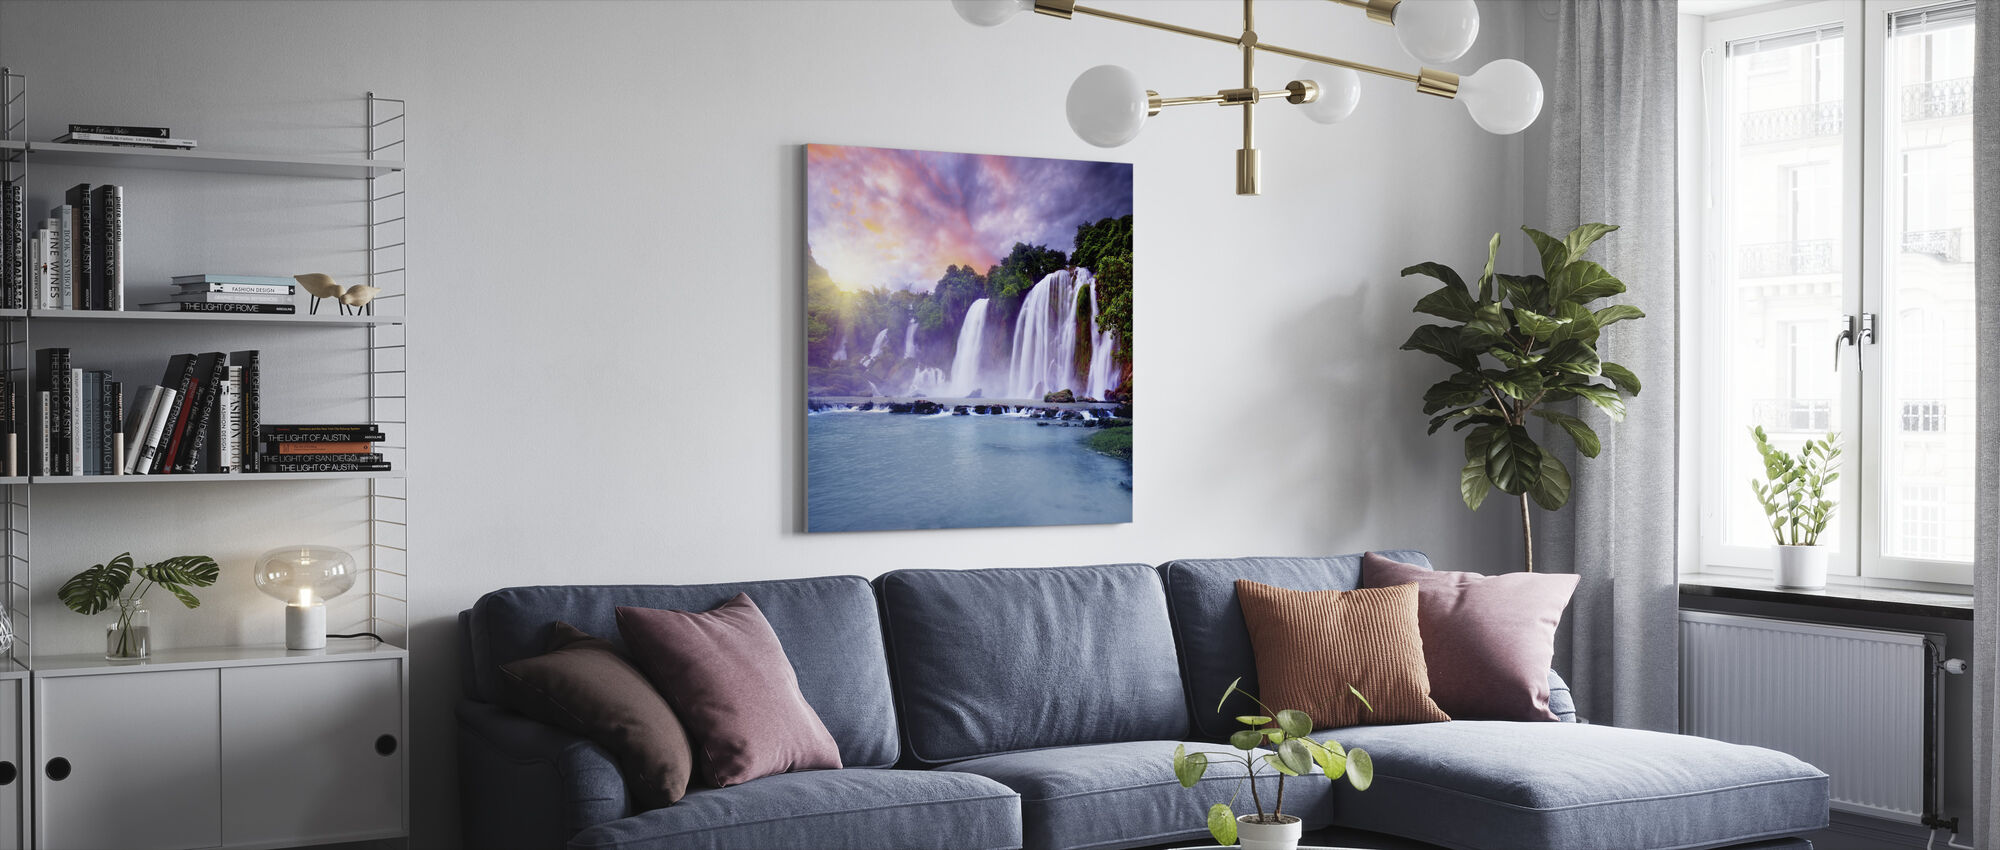 Banyue Waterfall - Canvas print - Living Room